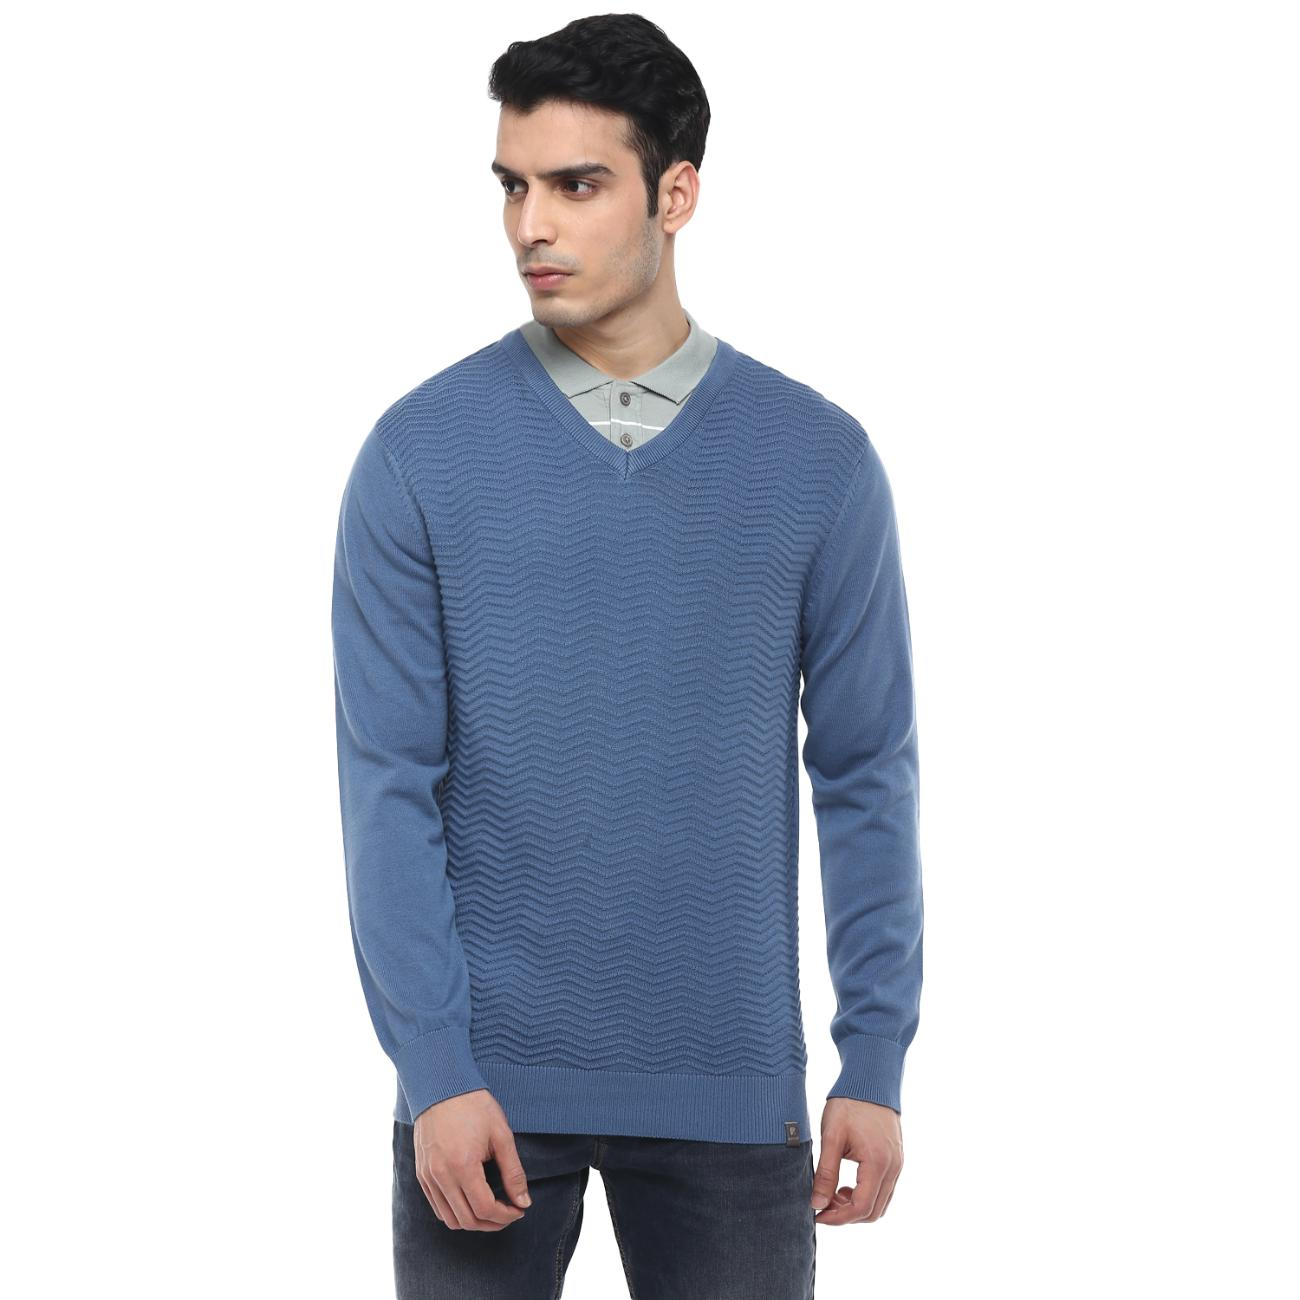 Buy Blue Casual Sweater V-neck